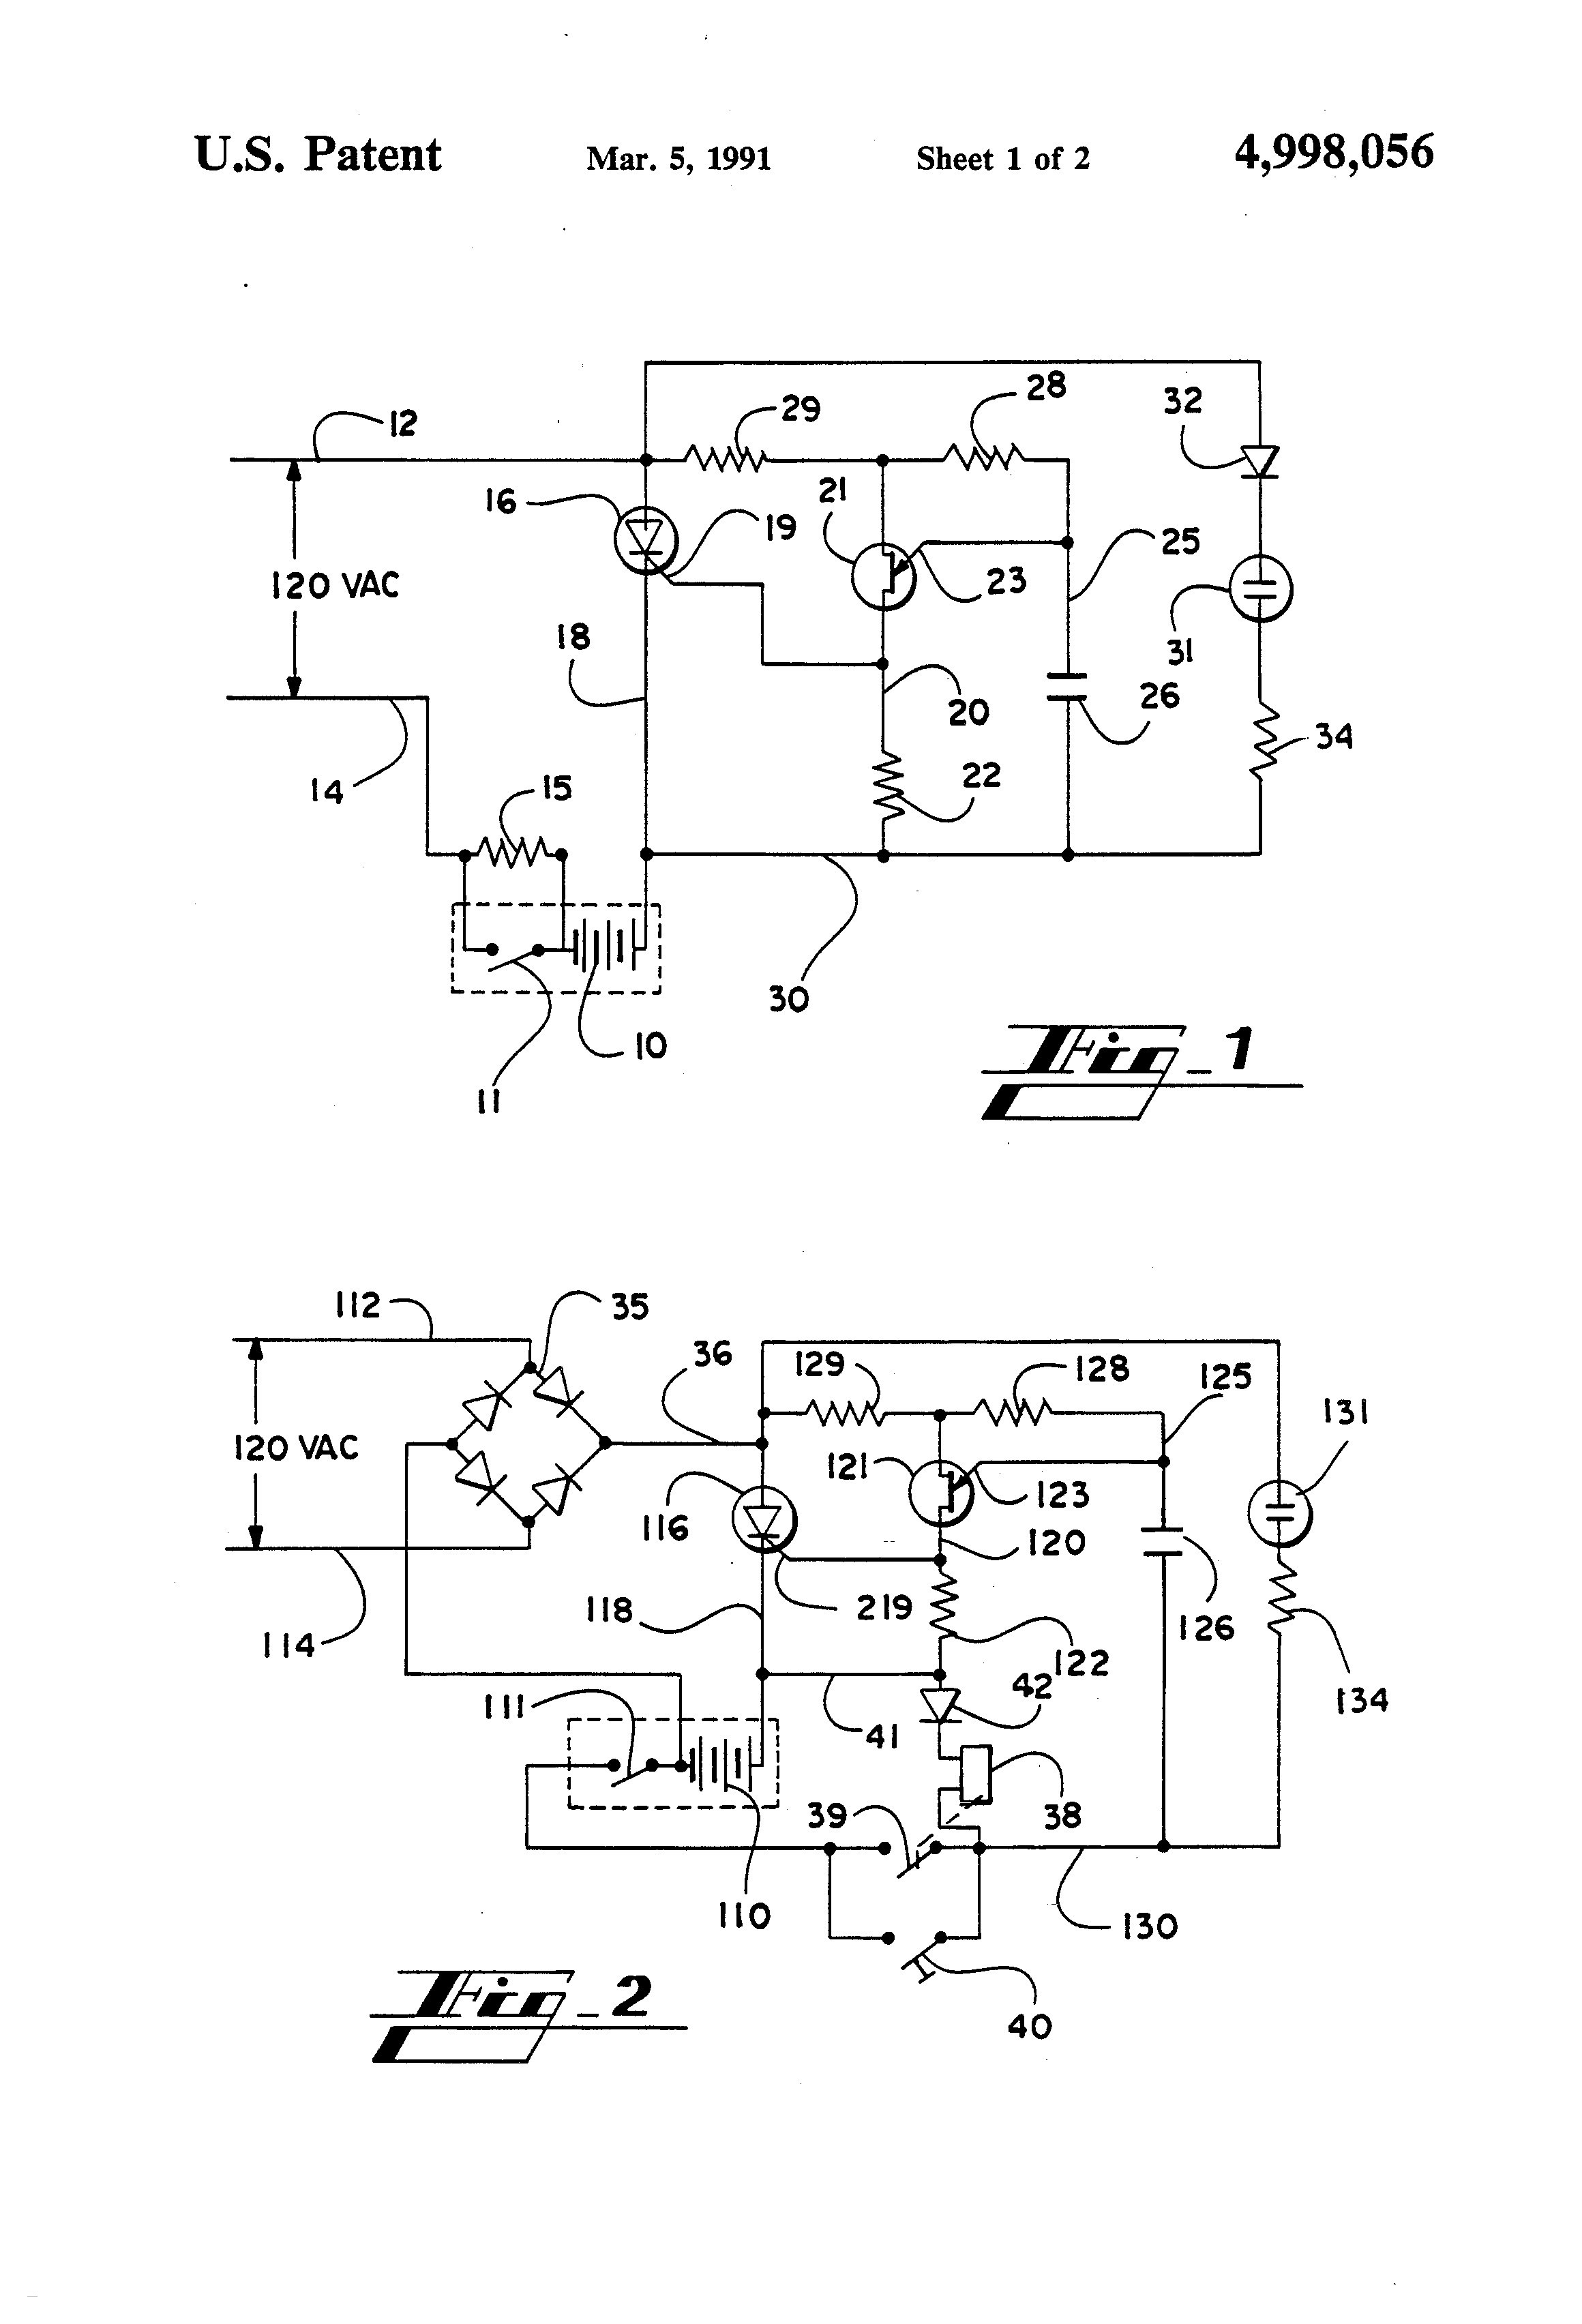 Car Battery Charger Circuit Diagram Cell Phone New Patent Us Google Patents Of